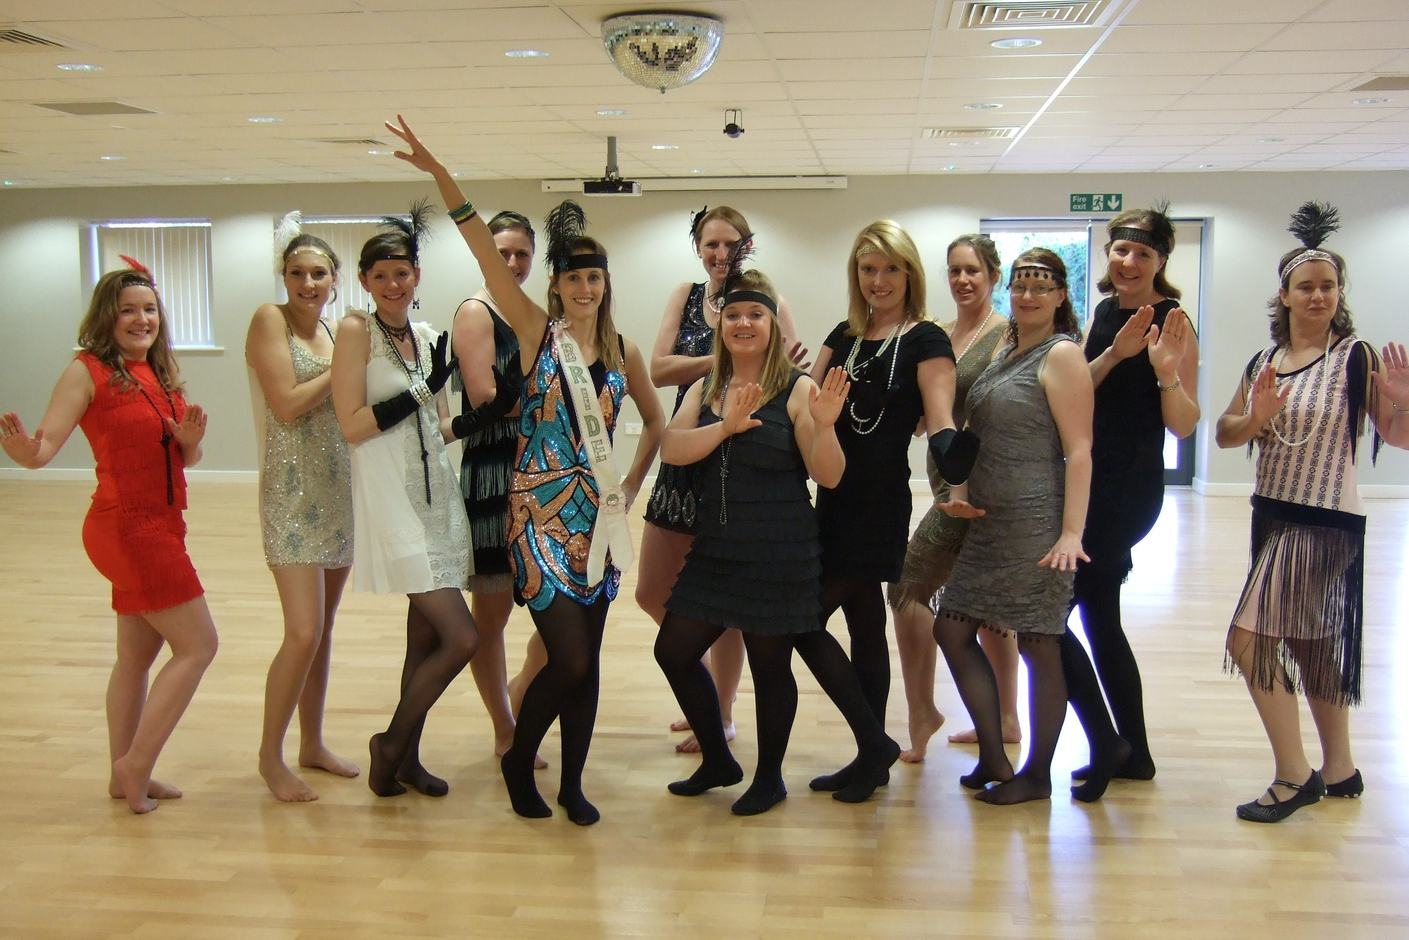 Charleston Hen Dance Party in North Norfolk